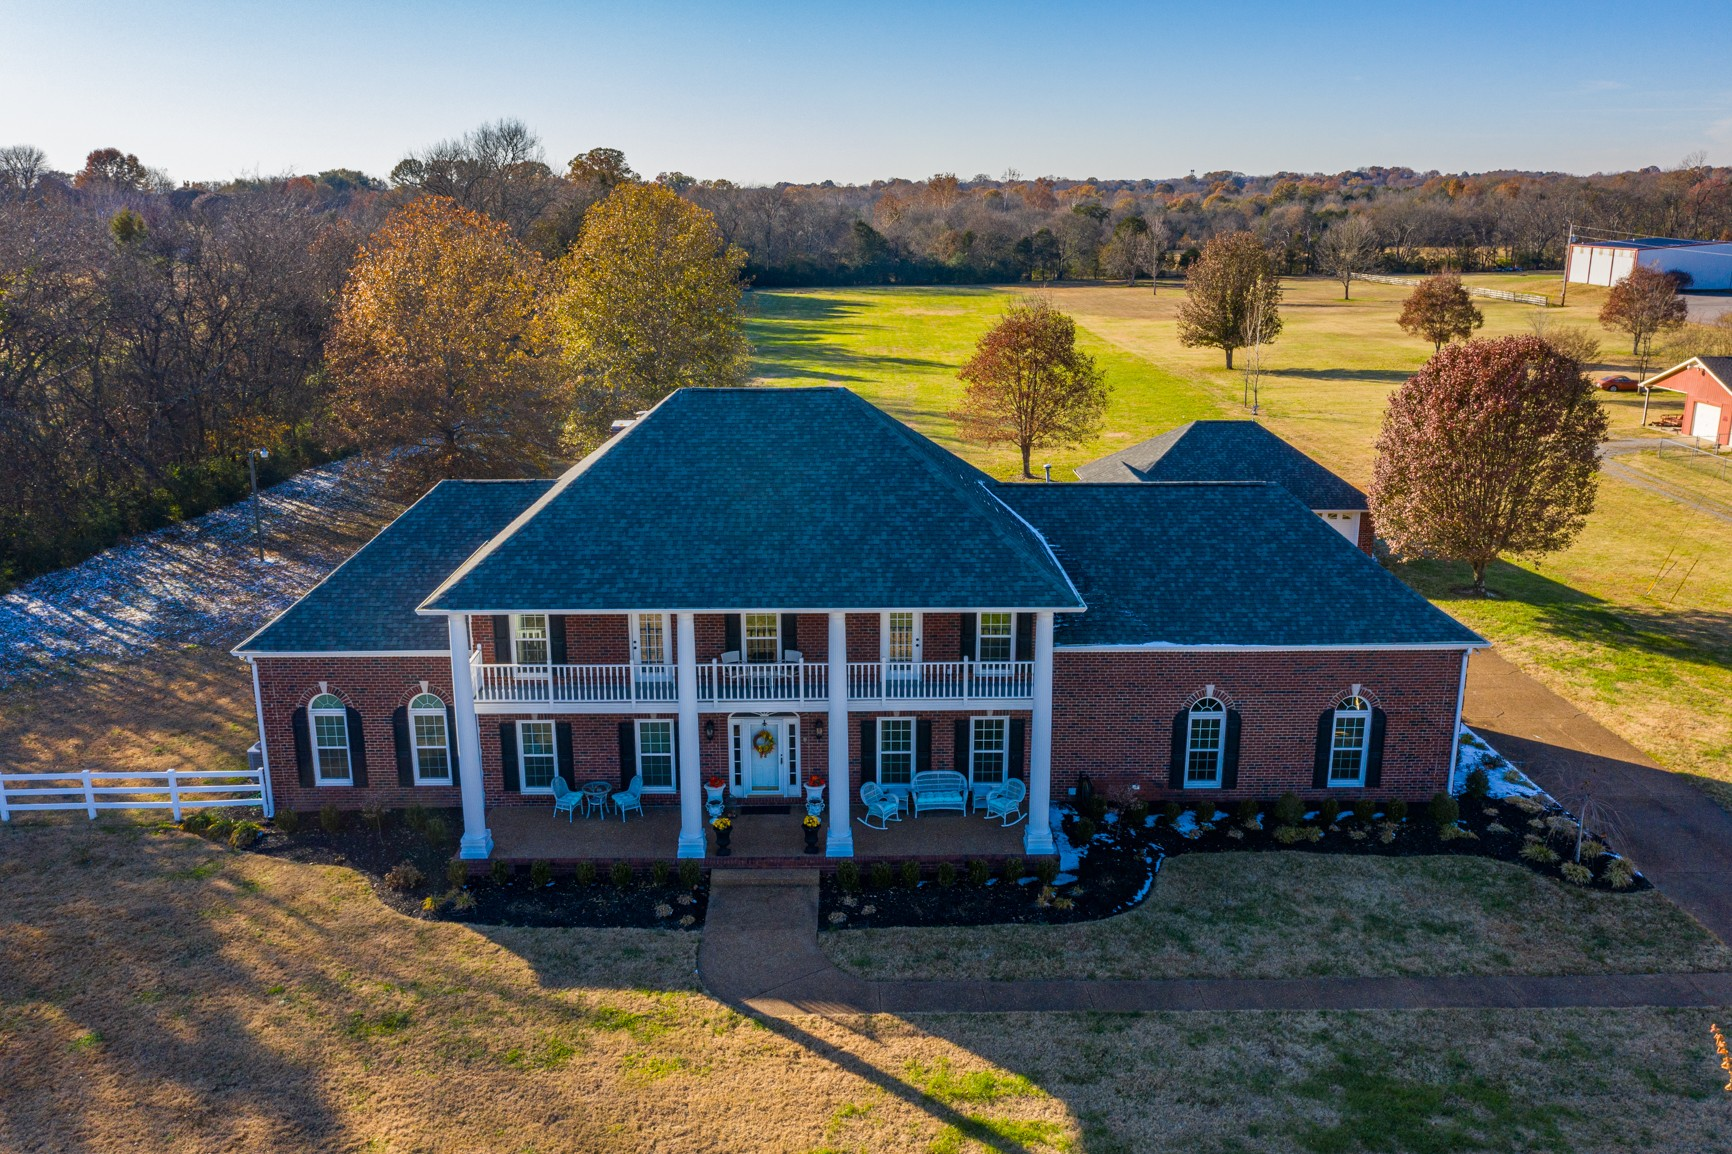 1916 S Mt Juliet Rd, Mount Juliet, TN 37122 - Mount Juliet, TN real estate listing